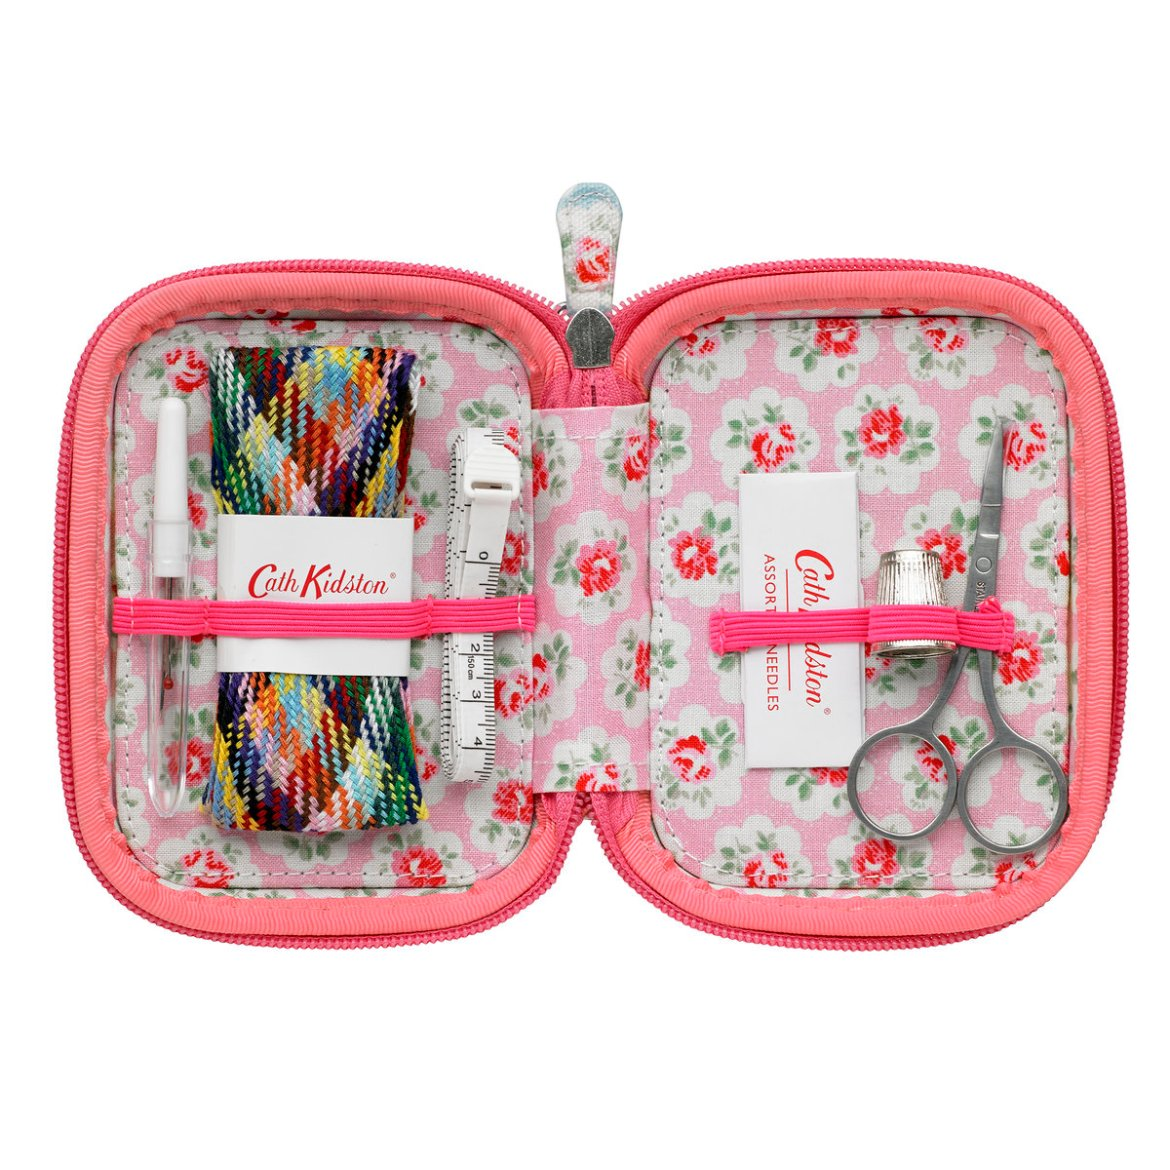 Emergency Sewing Kit by Cath Kidston